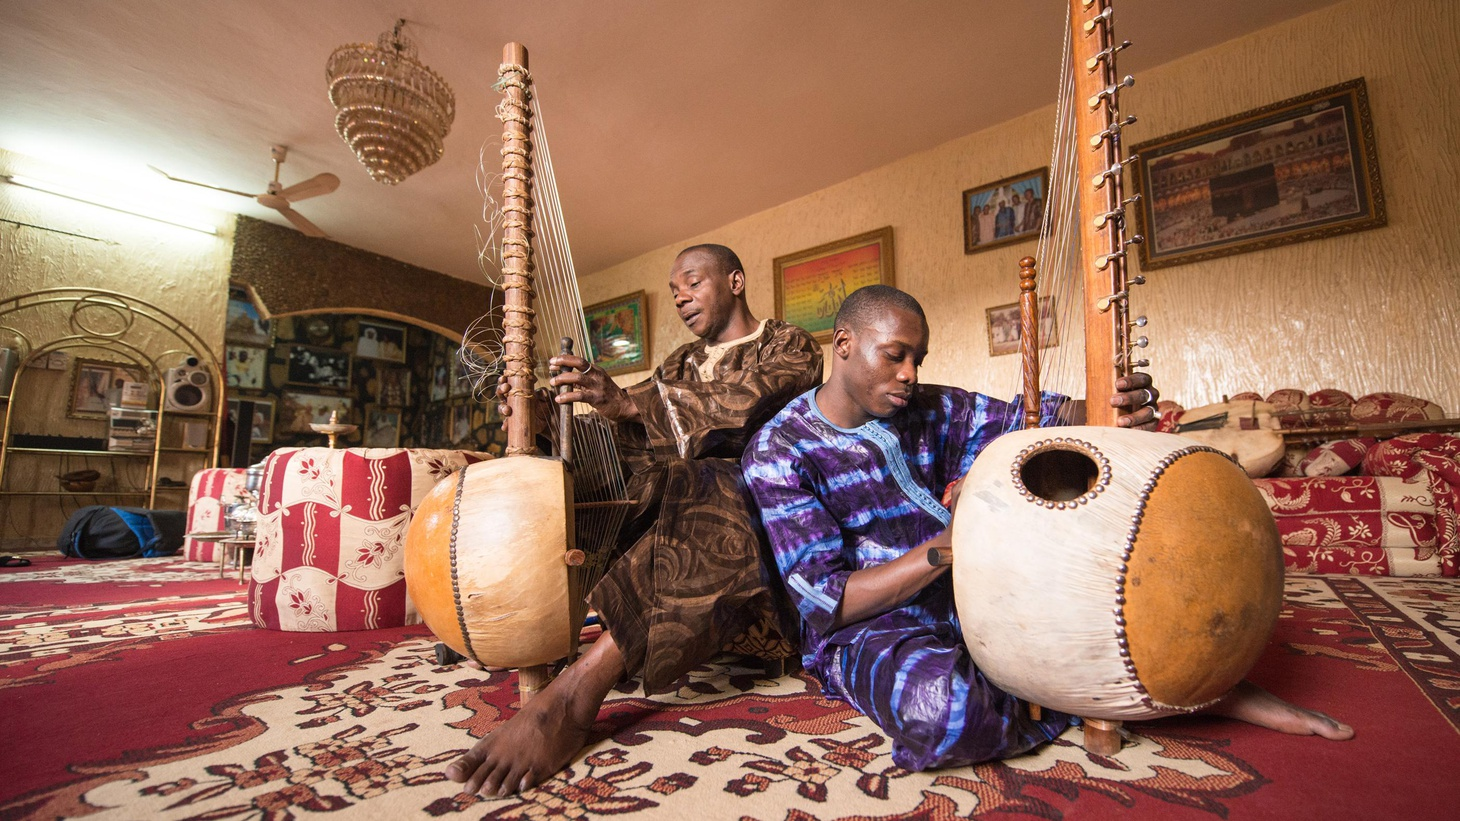 Toumani Diabaté is widely recognized as the greatest living kora player of our time. For his forthcoming album, he's teamed up with an emerging star, his son, Sidiki.